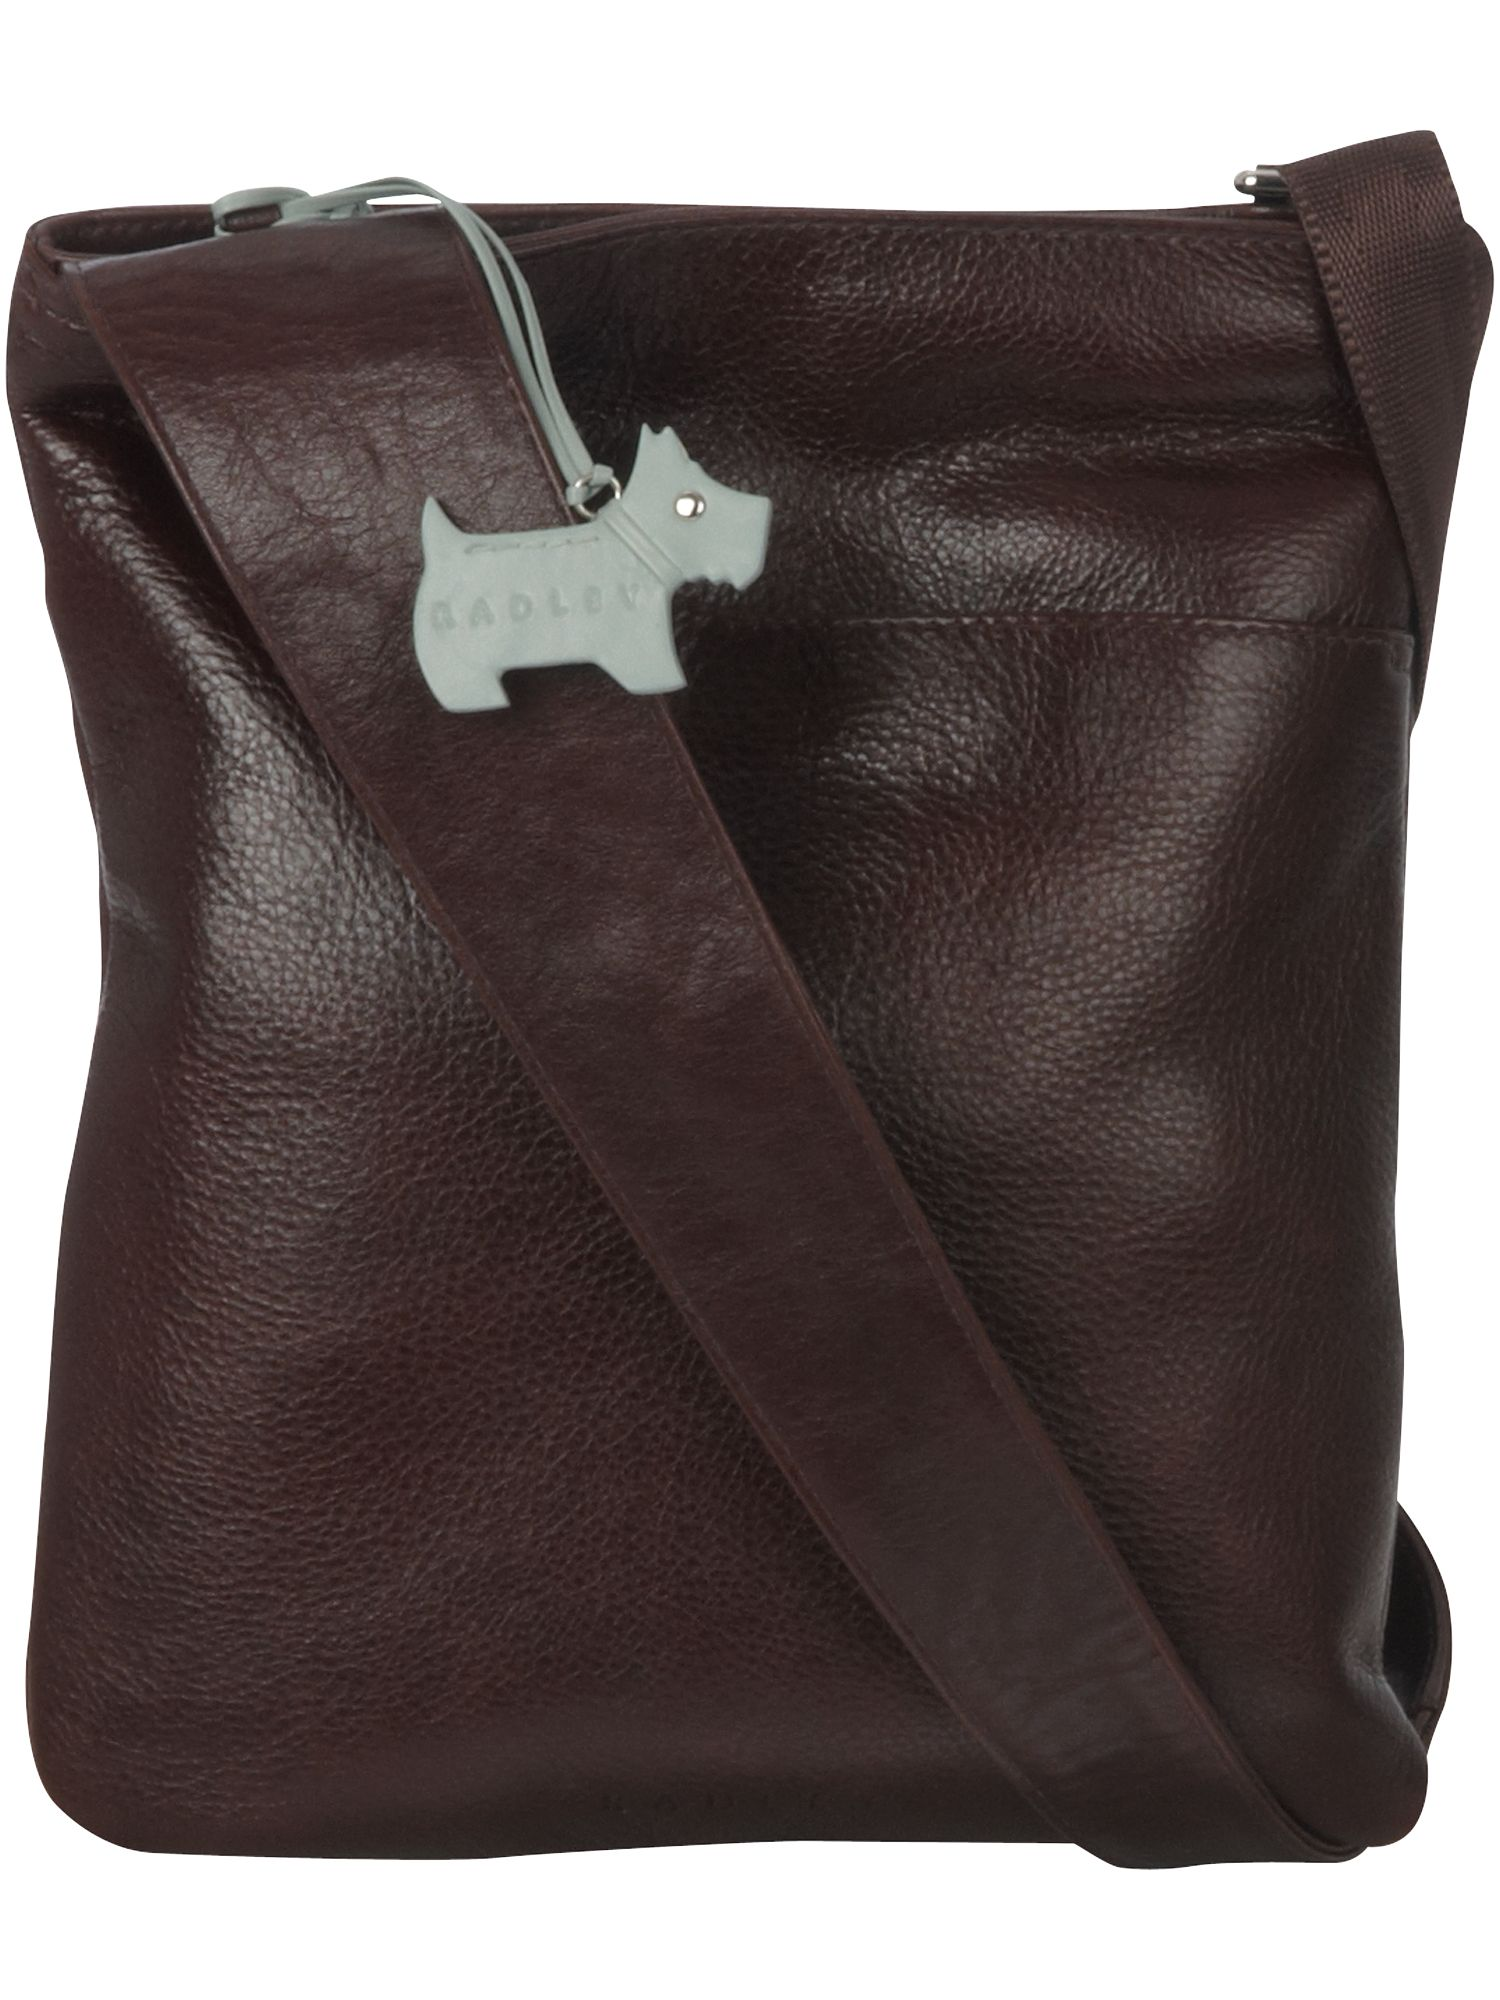 Pocket medium leather cross body bag.